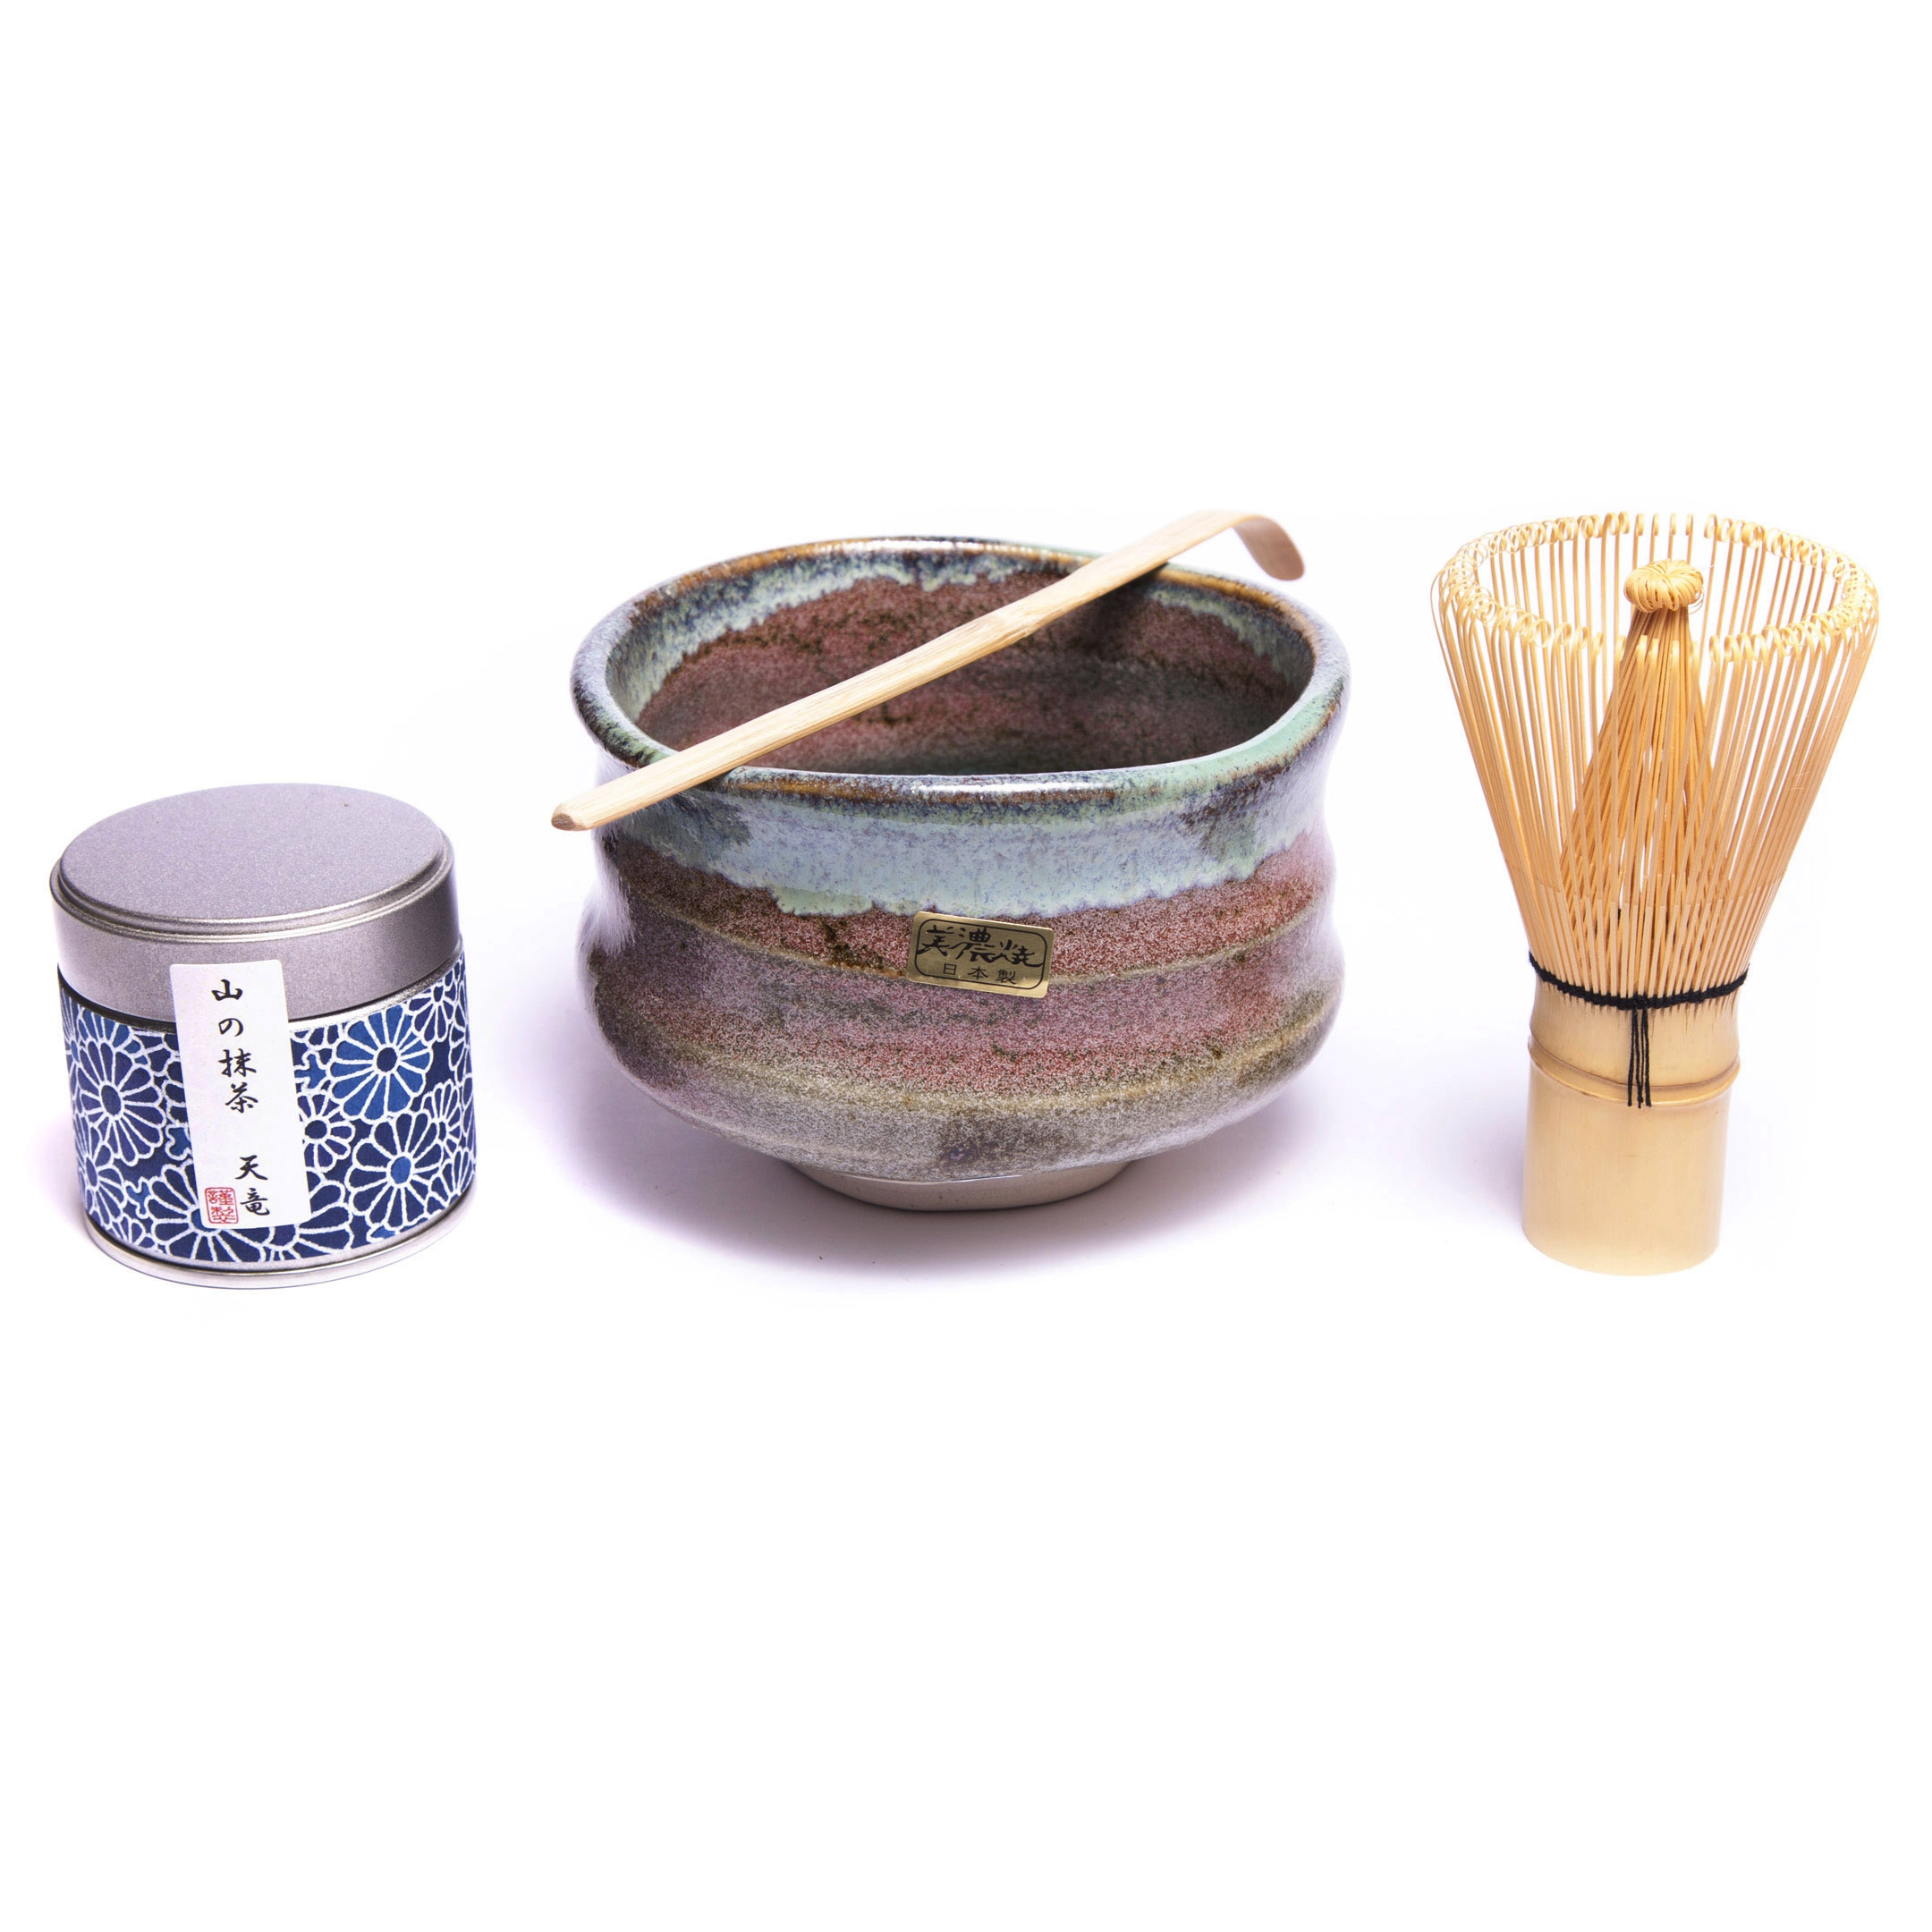 Matcha Beginner's Set 3